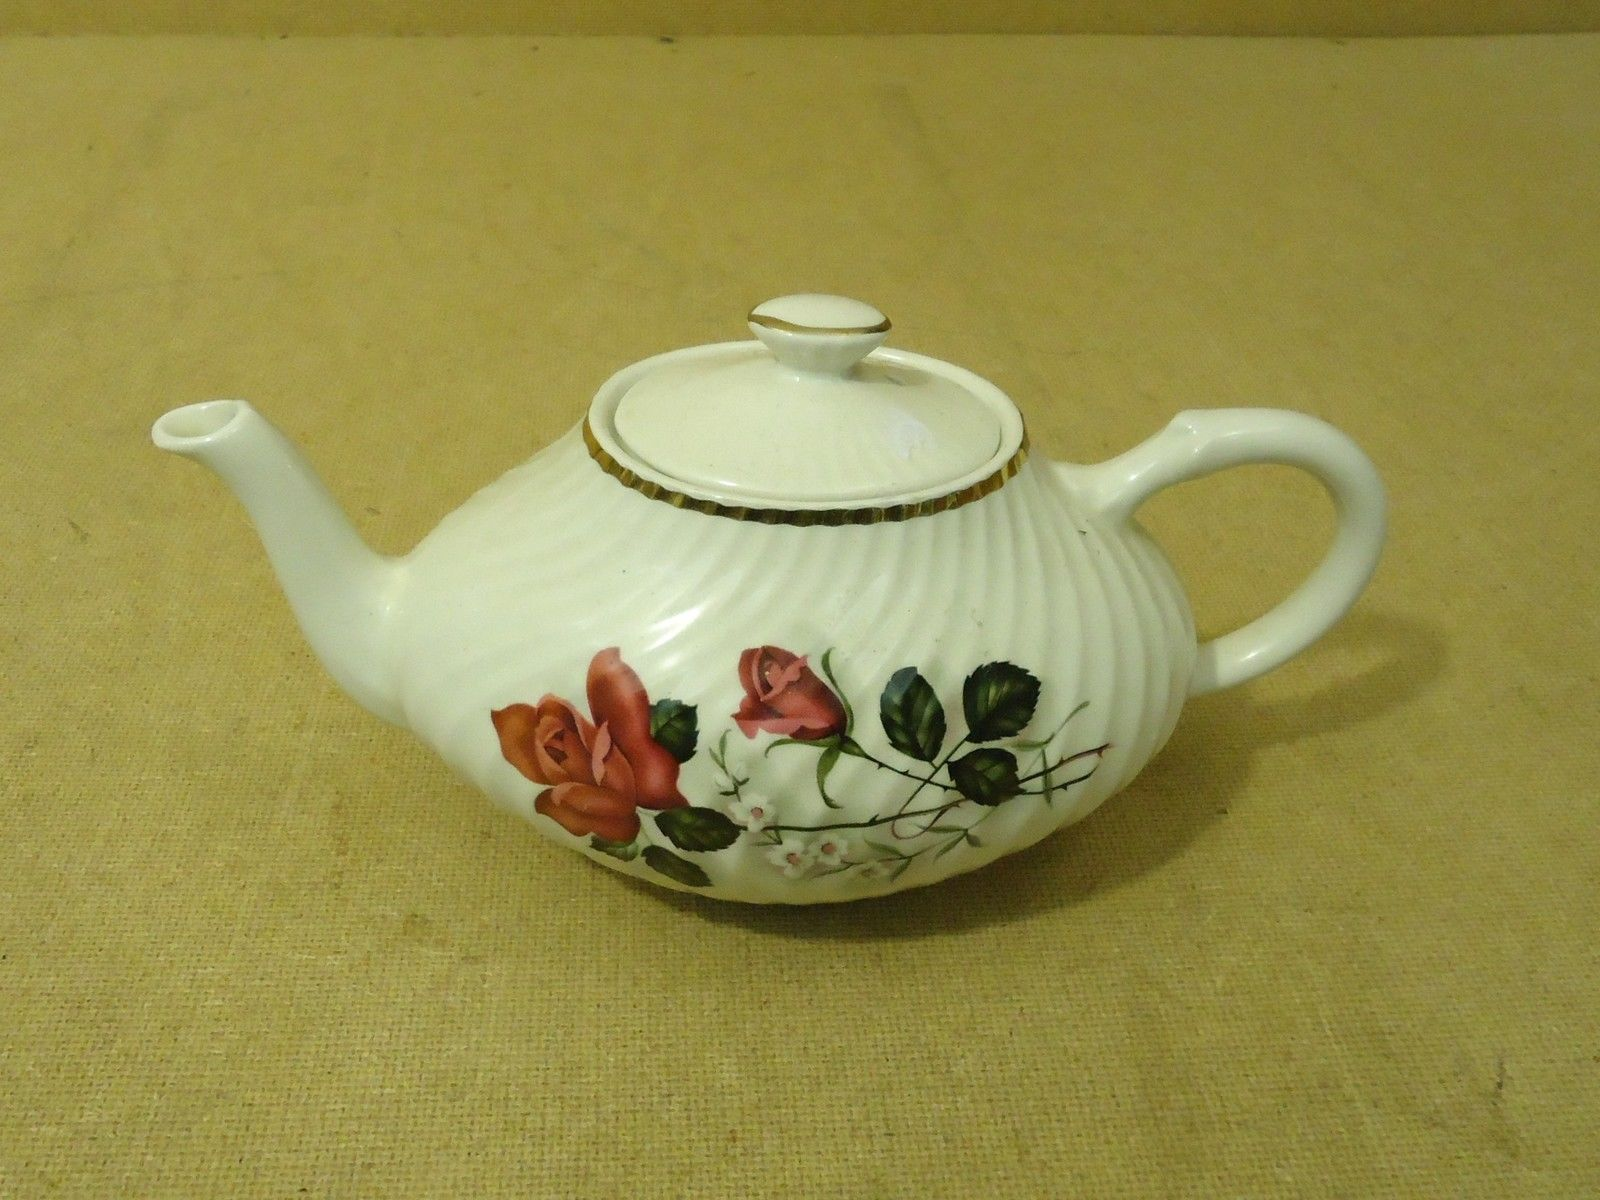 Arthur Wood 5167 Vintage Teapot 10 1/2in L x 5 1/2in W x 5 1/2in H China